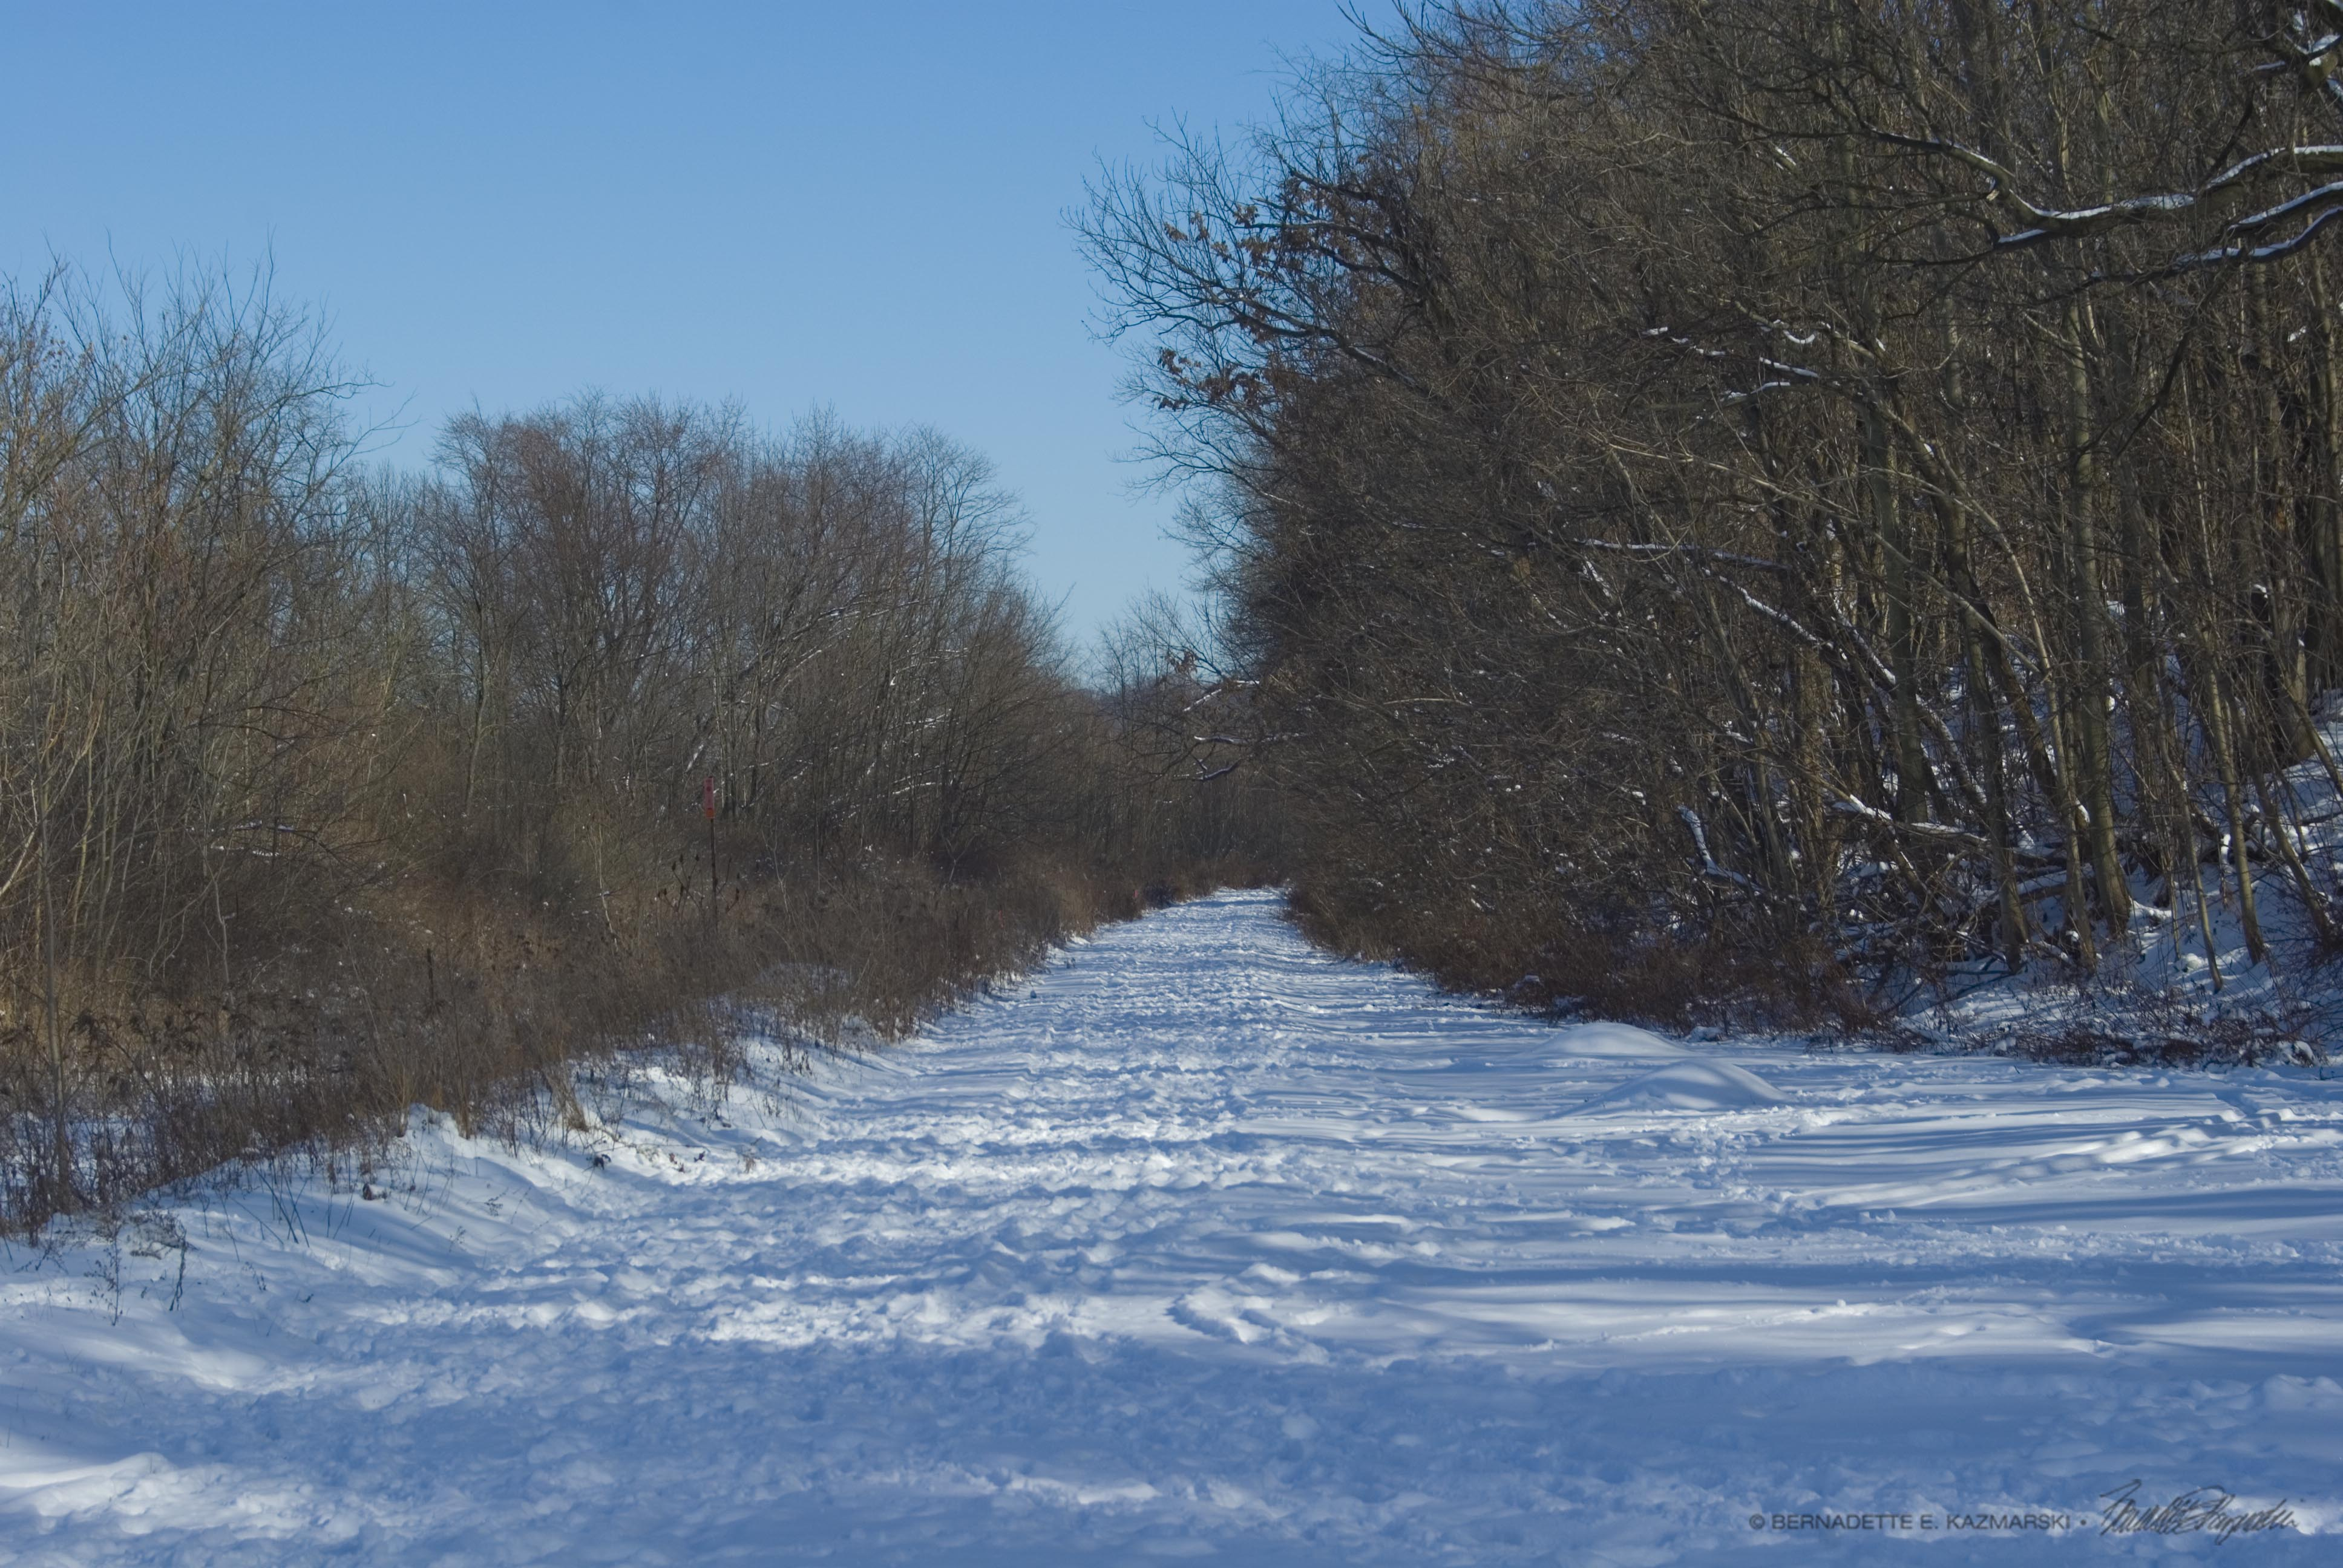 December on the Panhandle Trail